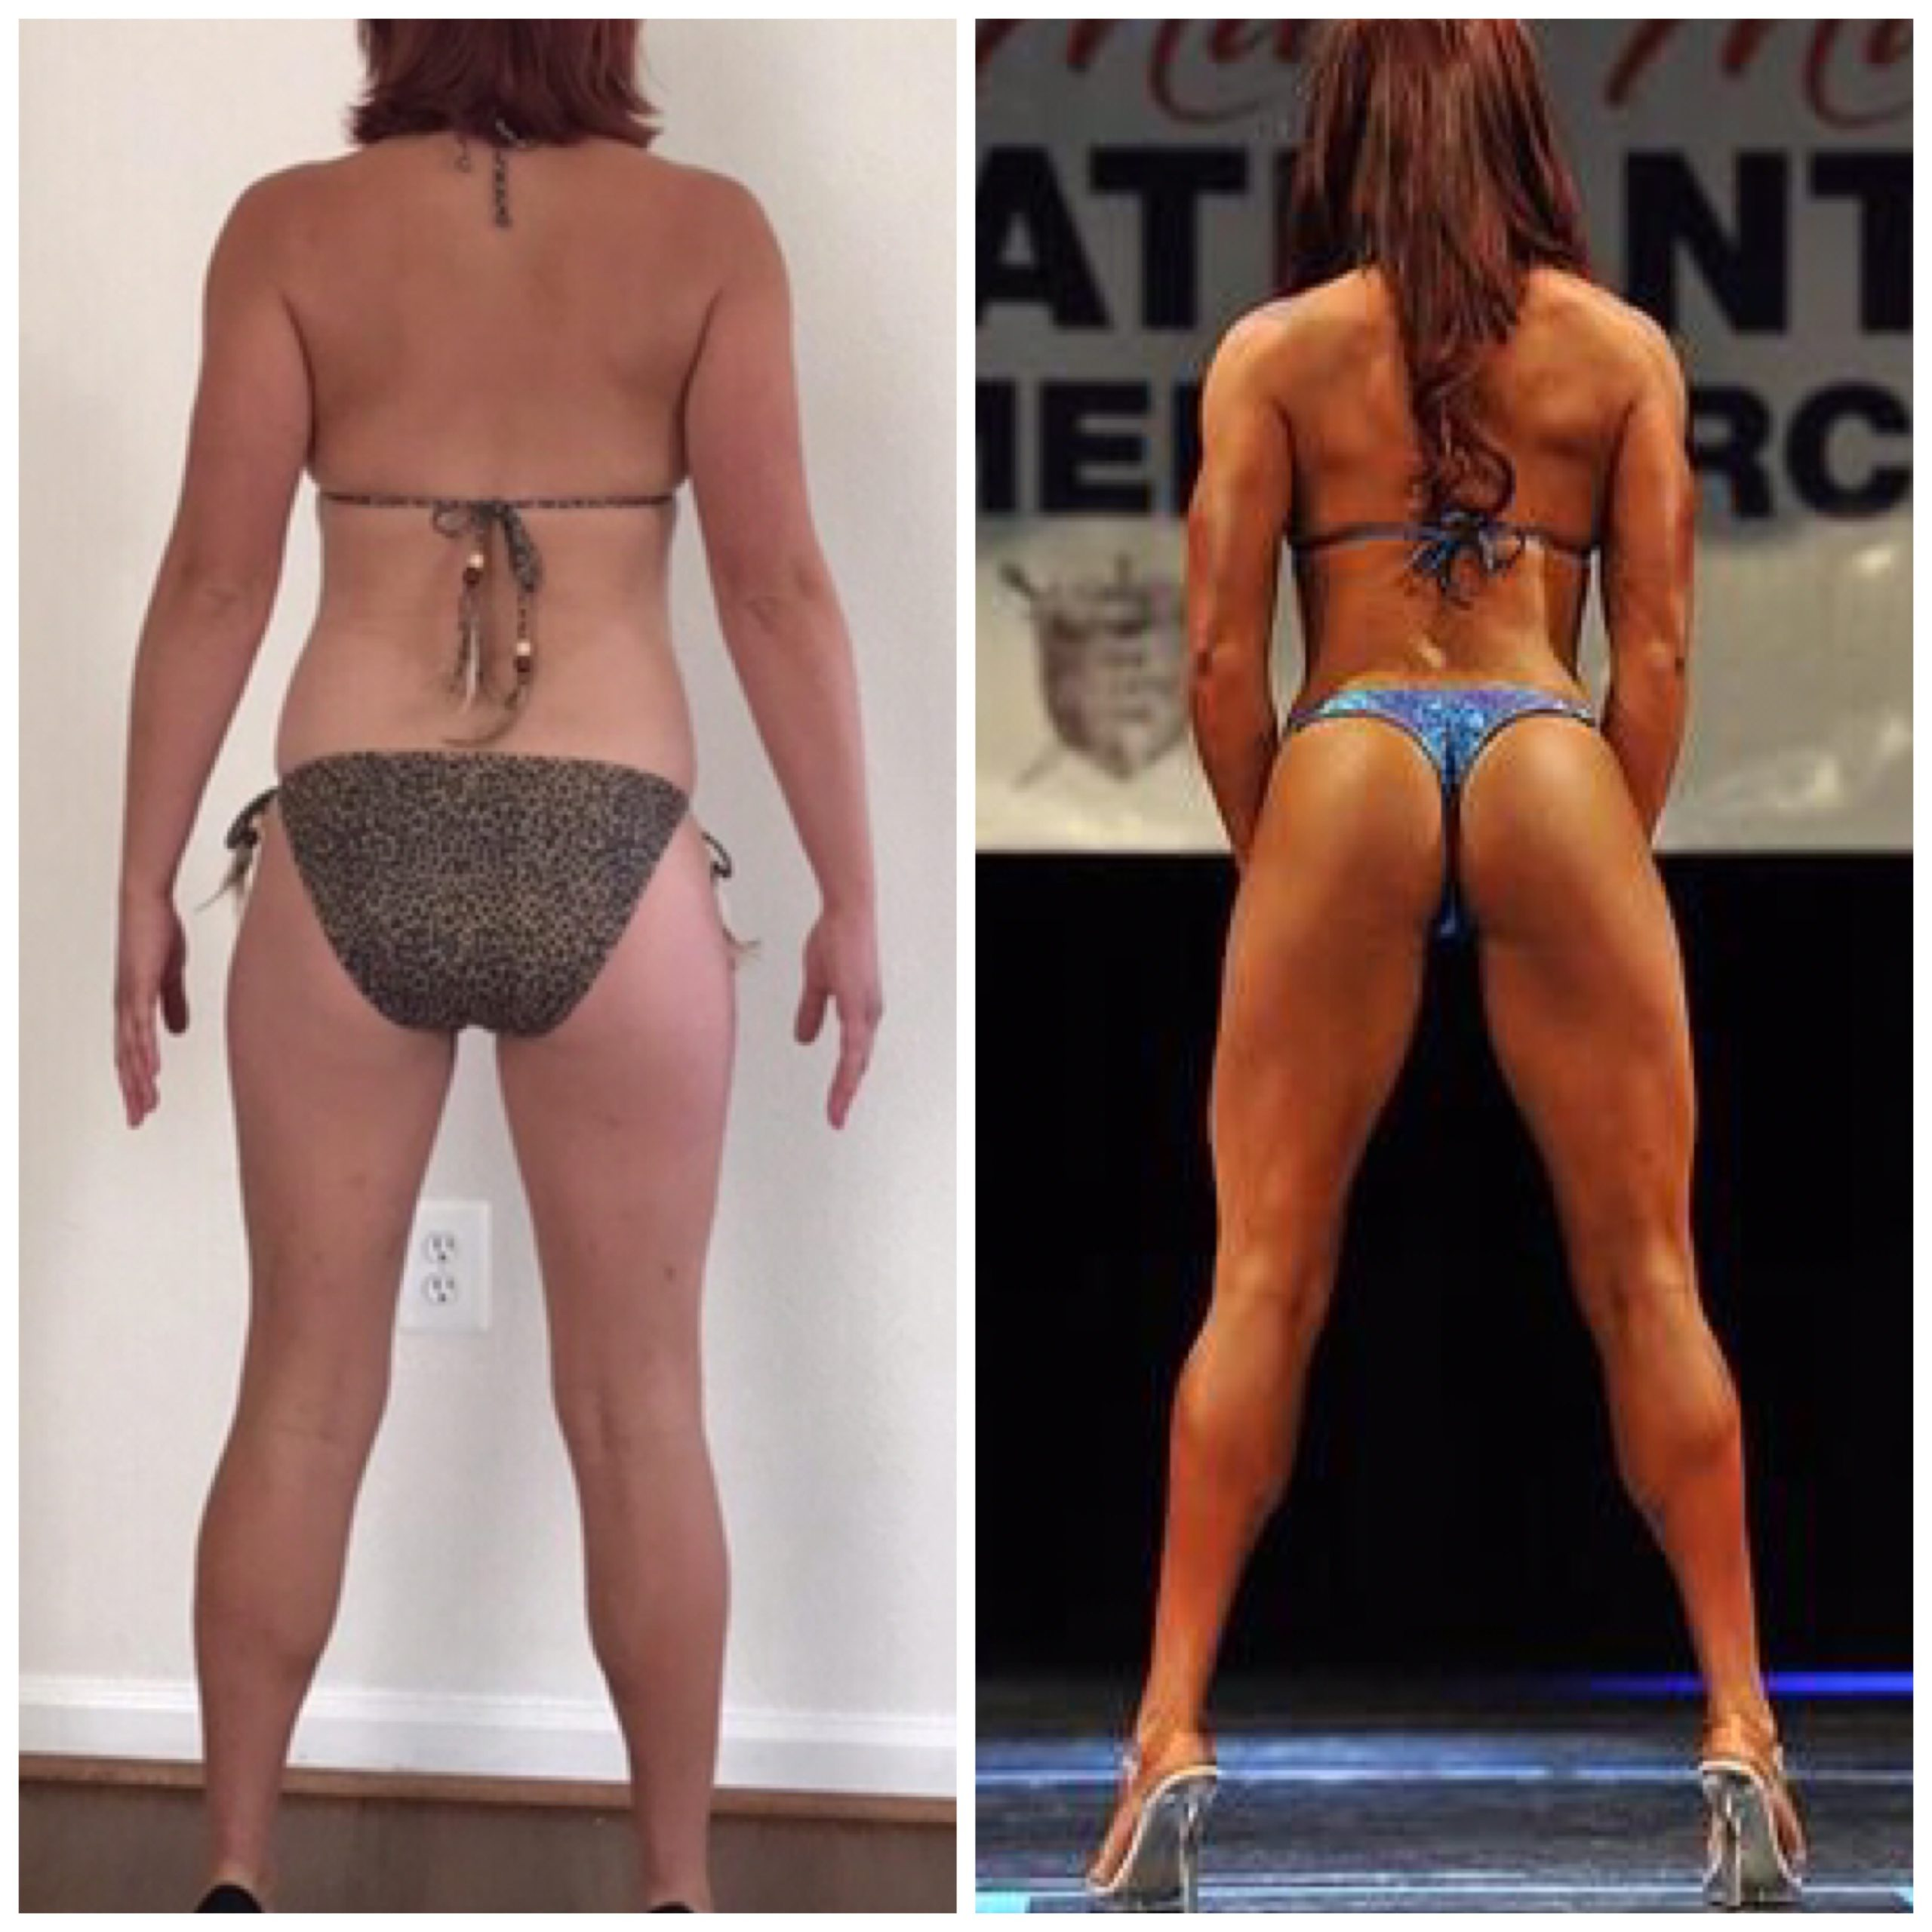 Total 12 week Transformation!